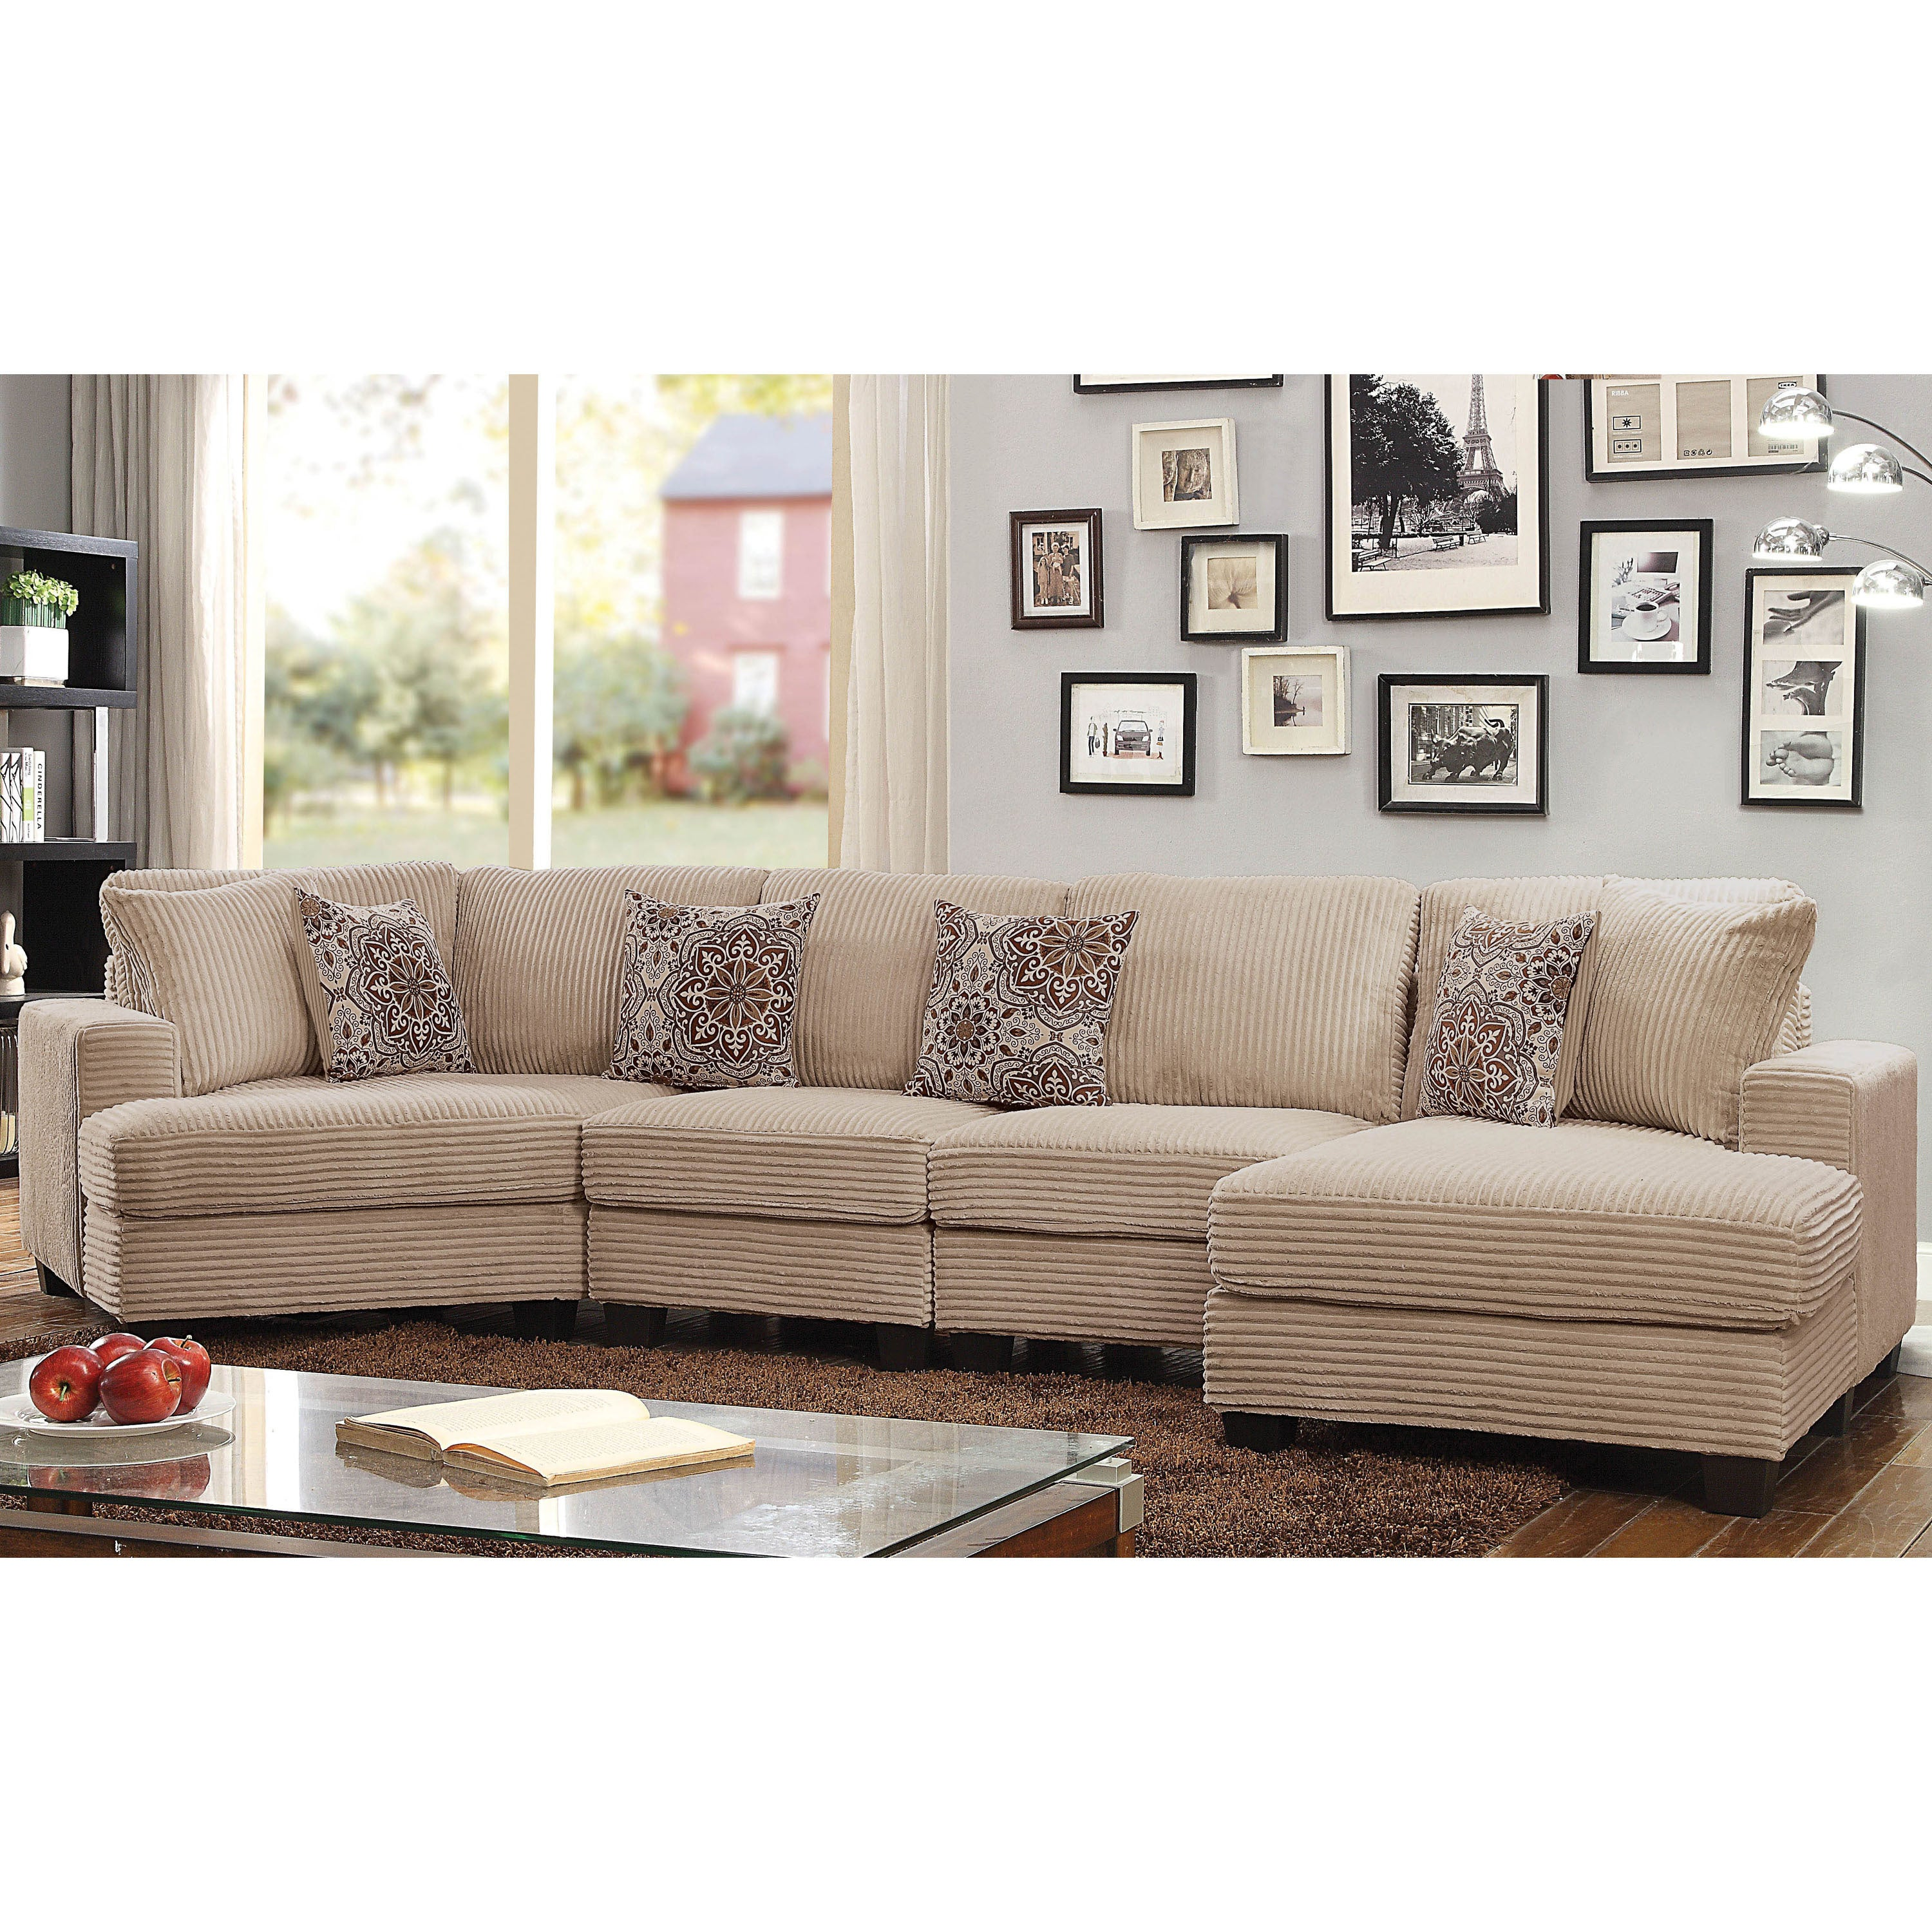 Barrington contemporary beige corduroy sectional sofa by foa